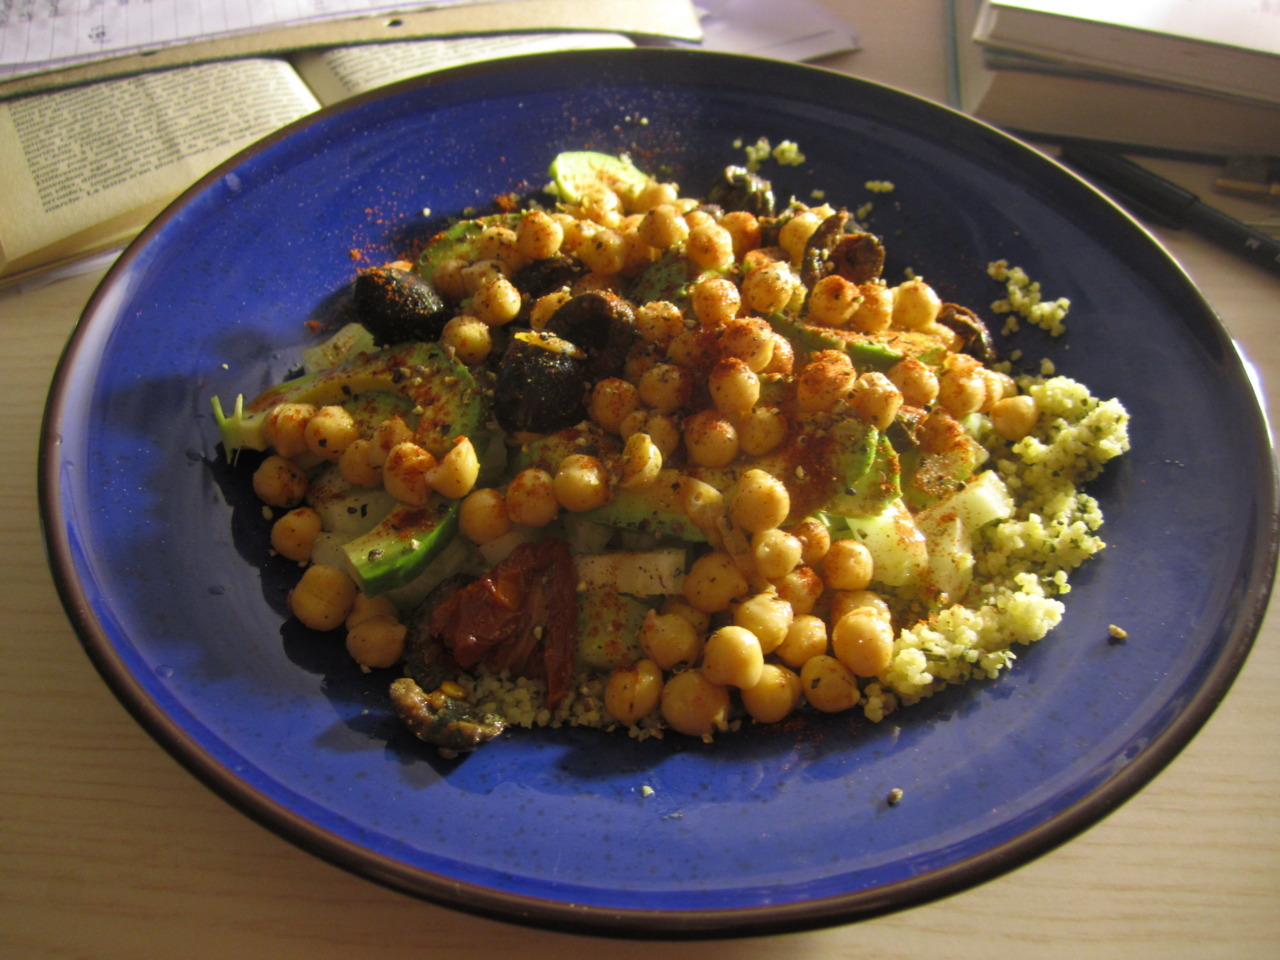 This is called ESSAY CRISIS COUSCOUS and it is what I made on Sunday night when brain food for an essay on the eighteenth century libertine novel was required. (Couscous with paprika chickpeas, home made marinated olives and sun-dried tomatoes, fresh coriander, avocado and a basil and lemon dressing…) Grill love <3 (though technically grill not used… part of the overall 'I HAVE NO KITCHEN, BUT STILL I MUST COOK AND EAT vibes of this blog)